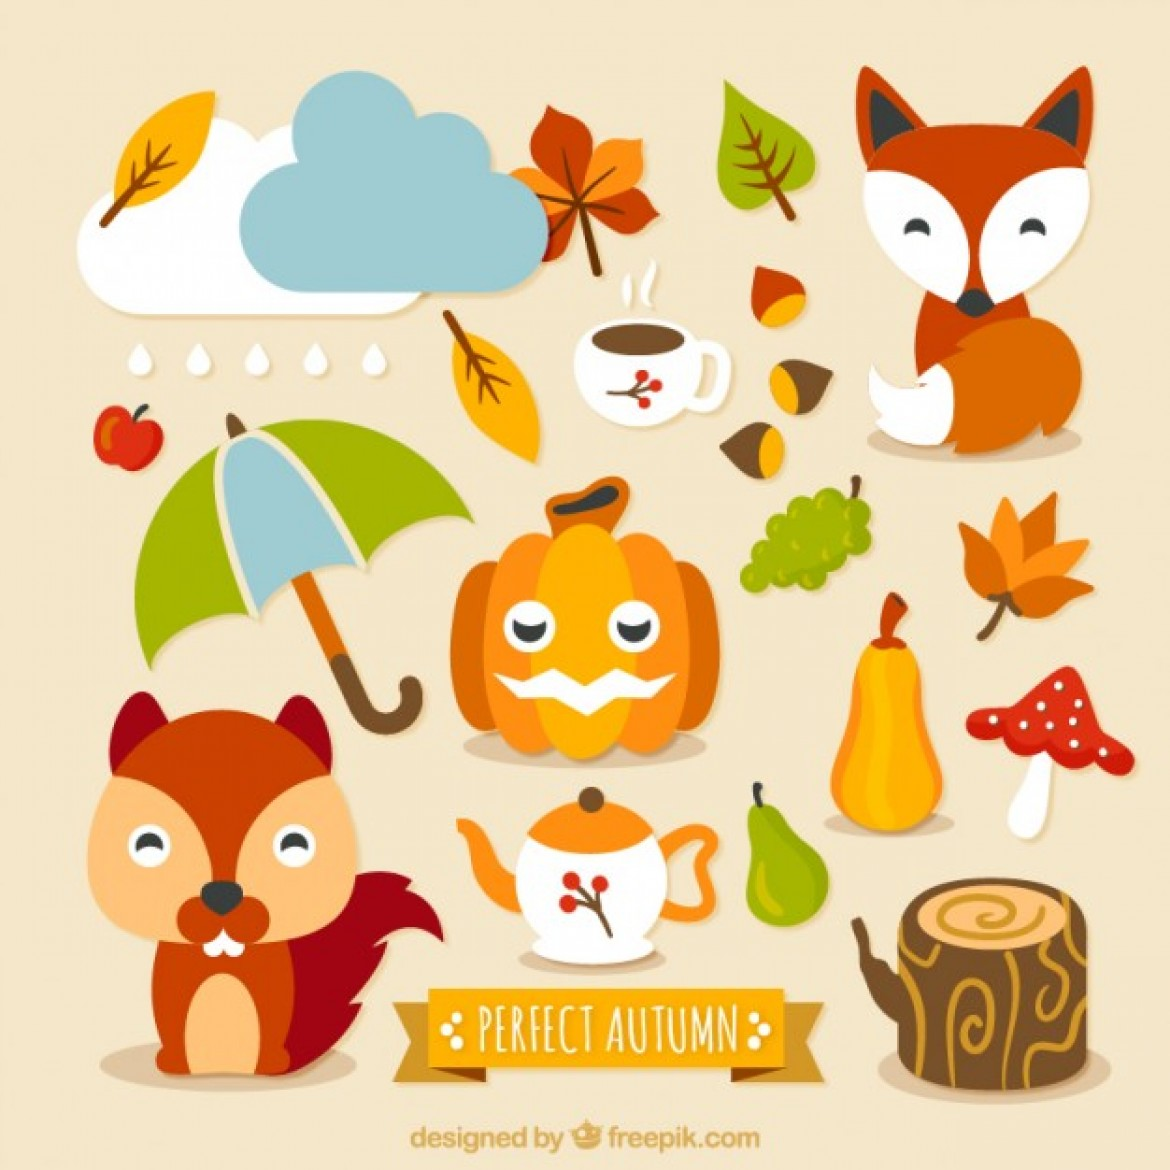 wpid-lovely-autumn-characters-and-elements_23-2147520975-1170x1170